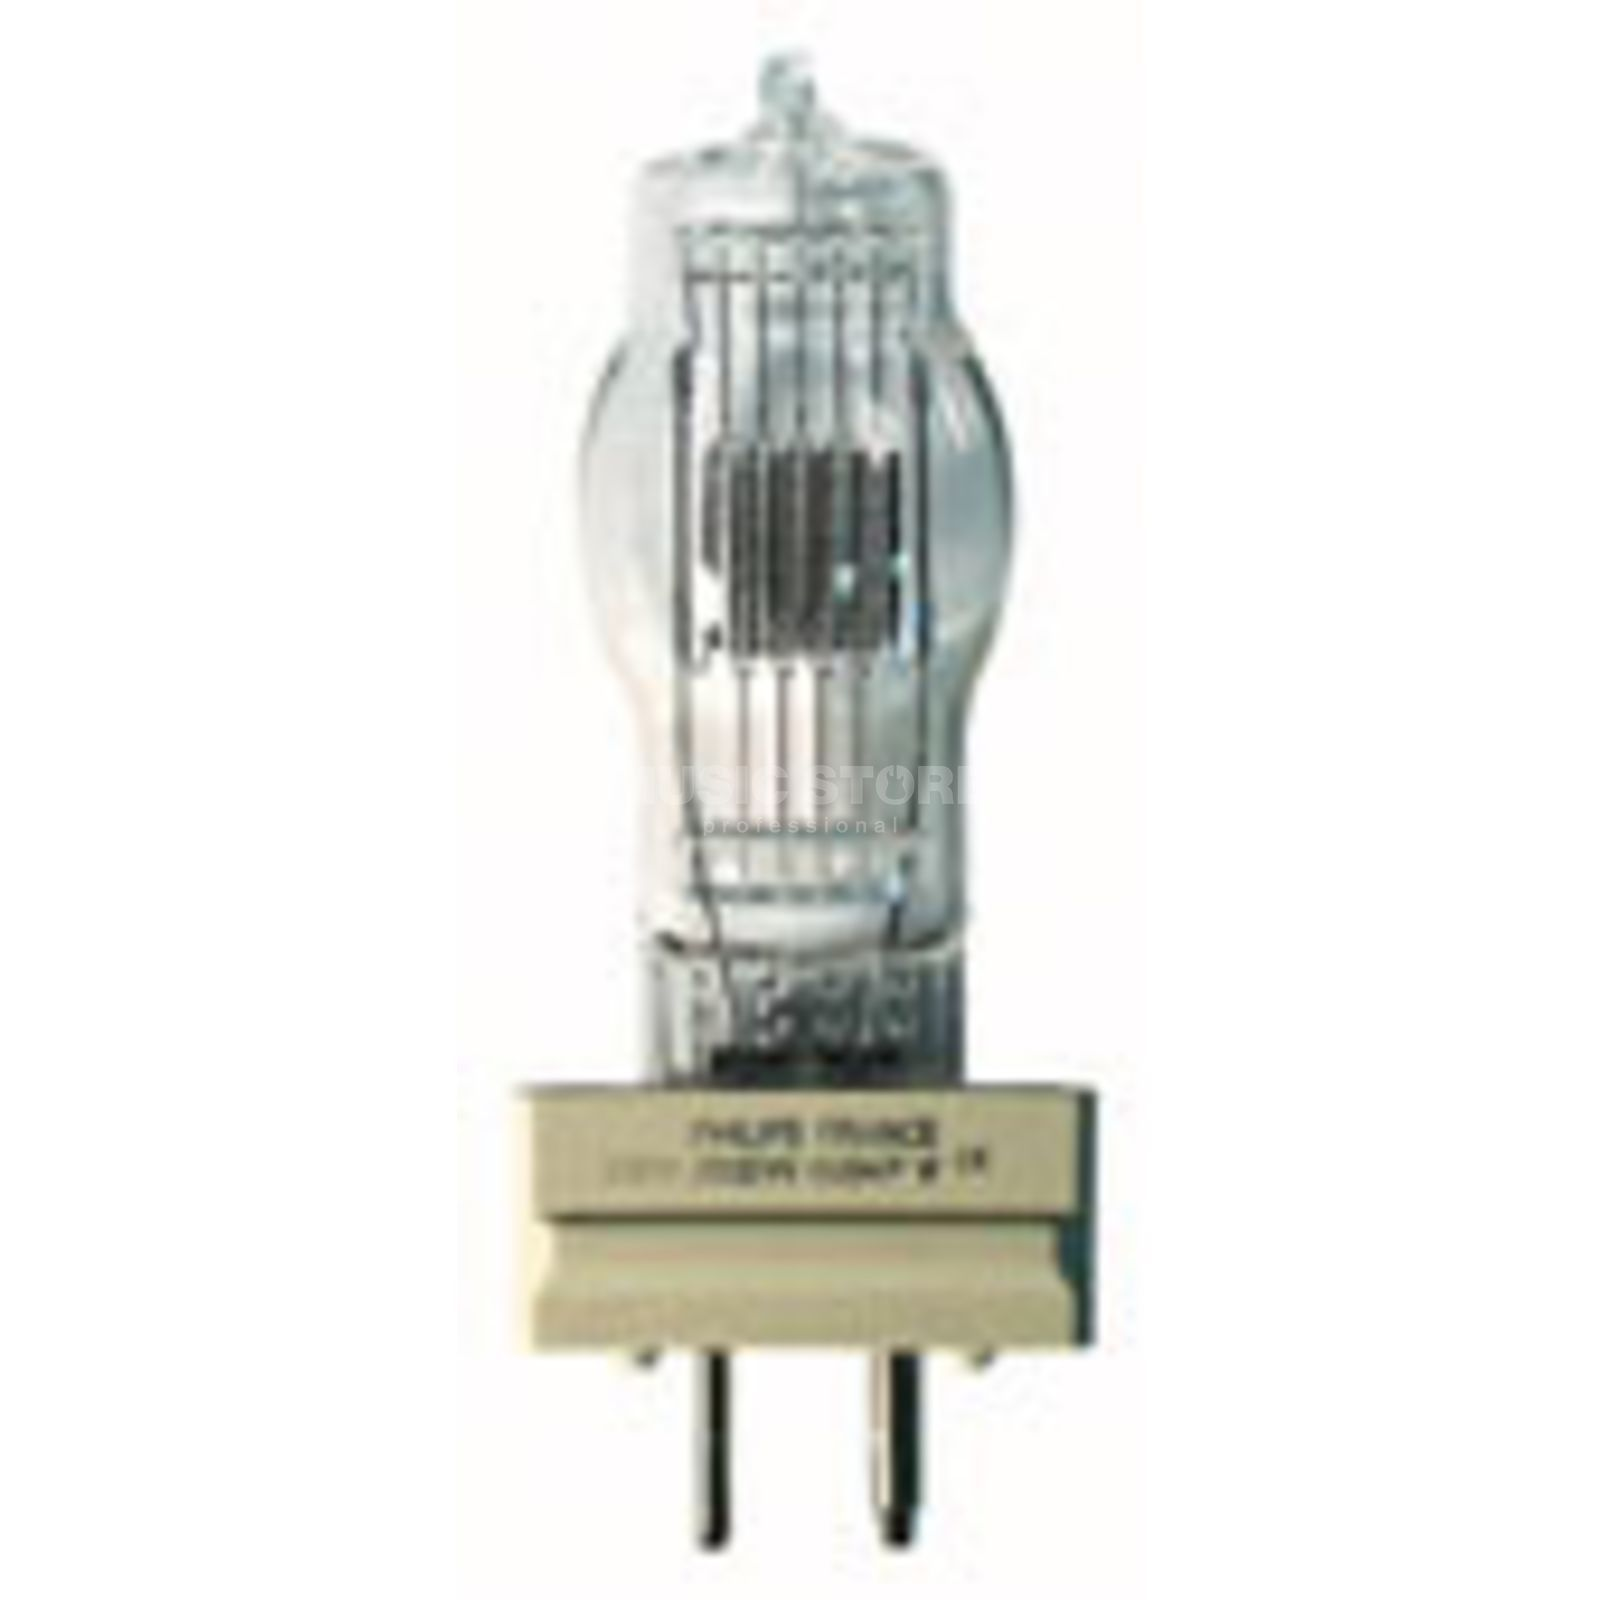 PHILIPS Bulb GY 16 240V/2000W CP72  Produktbillede